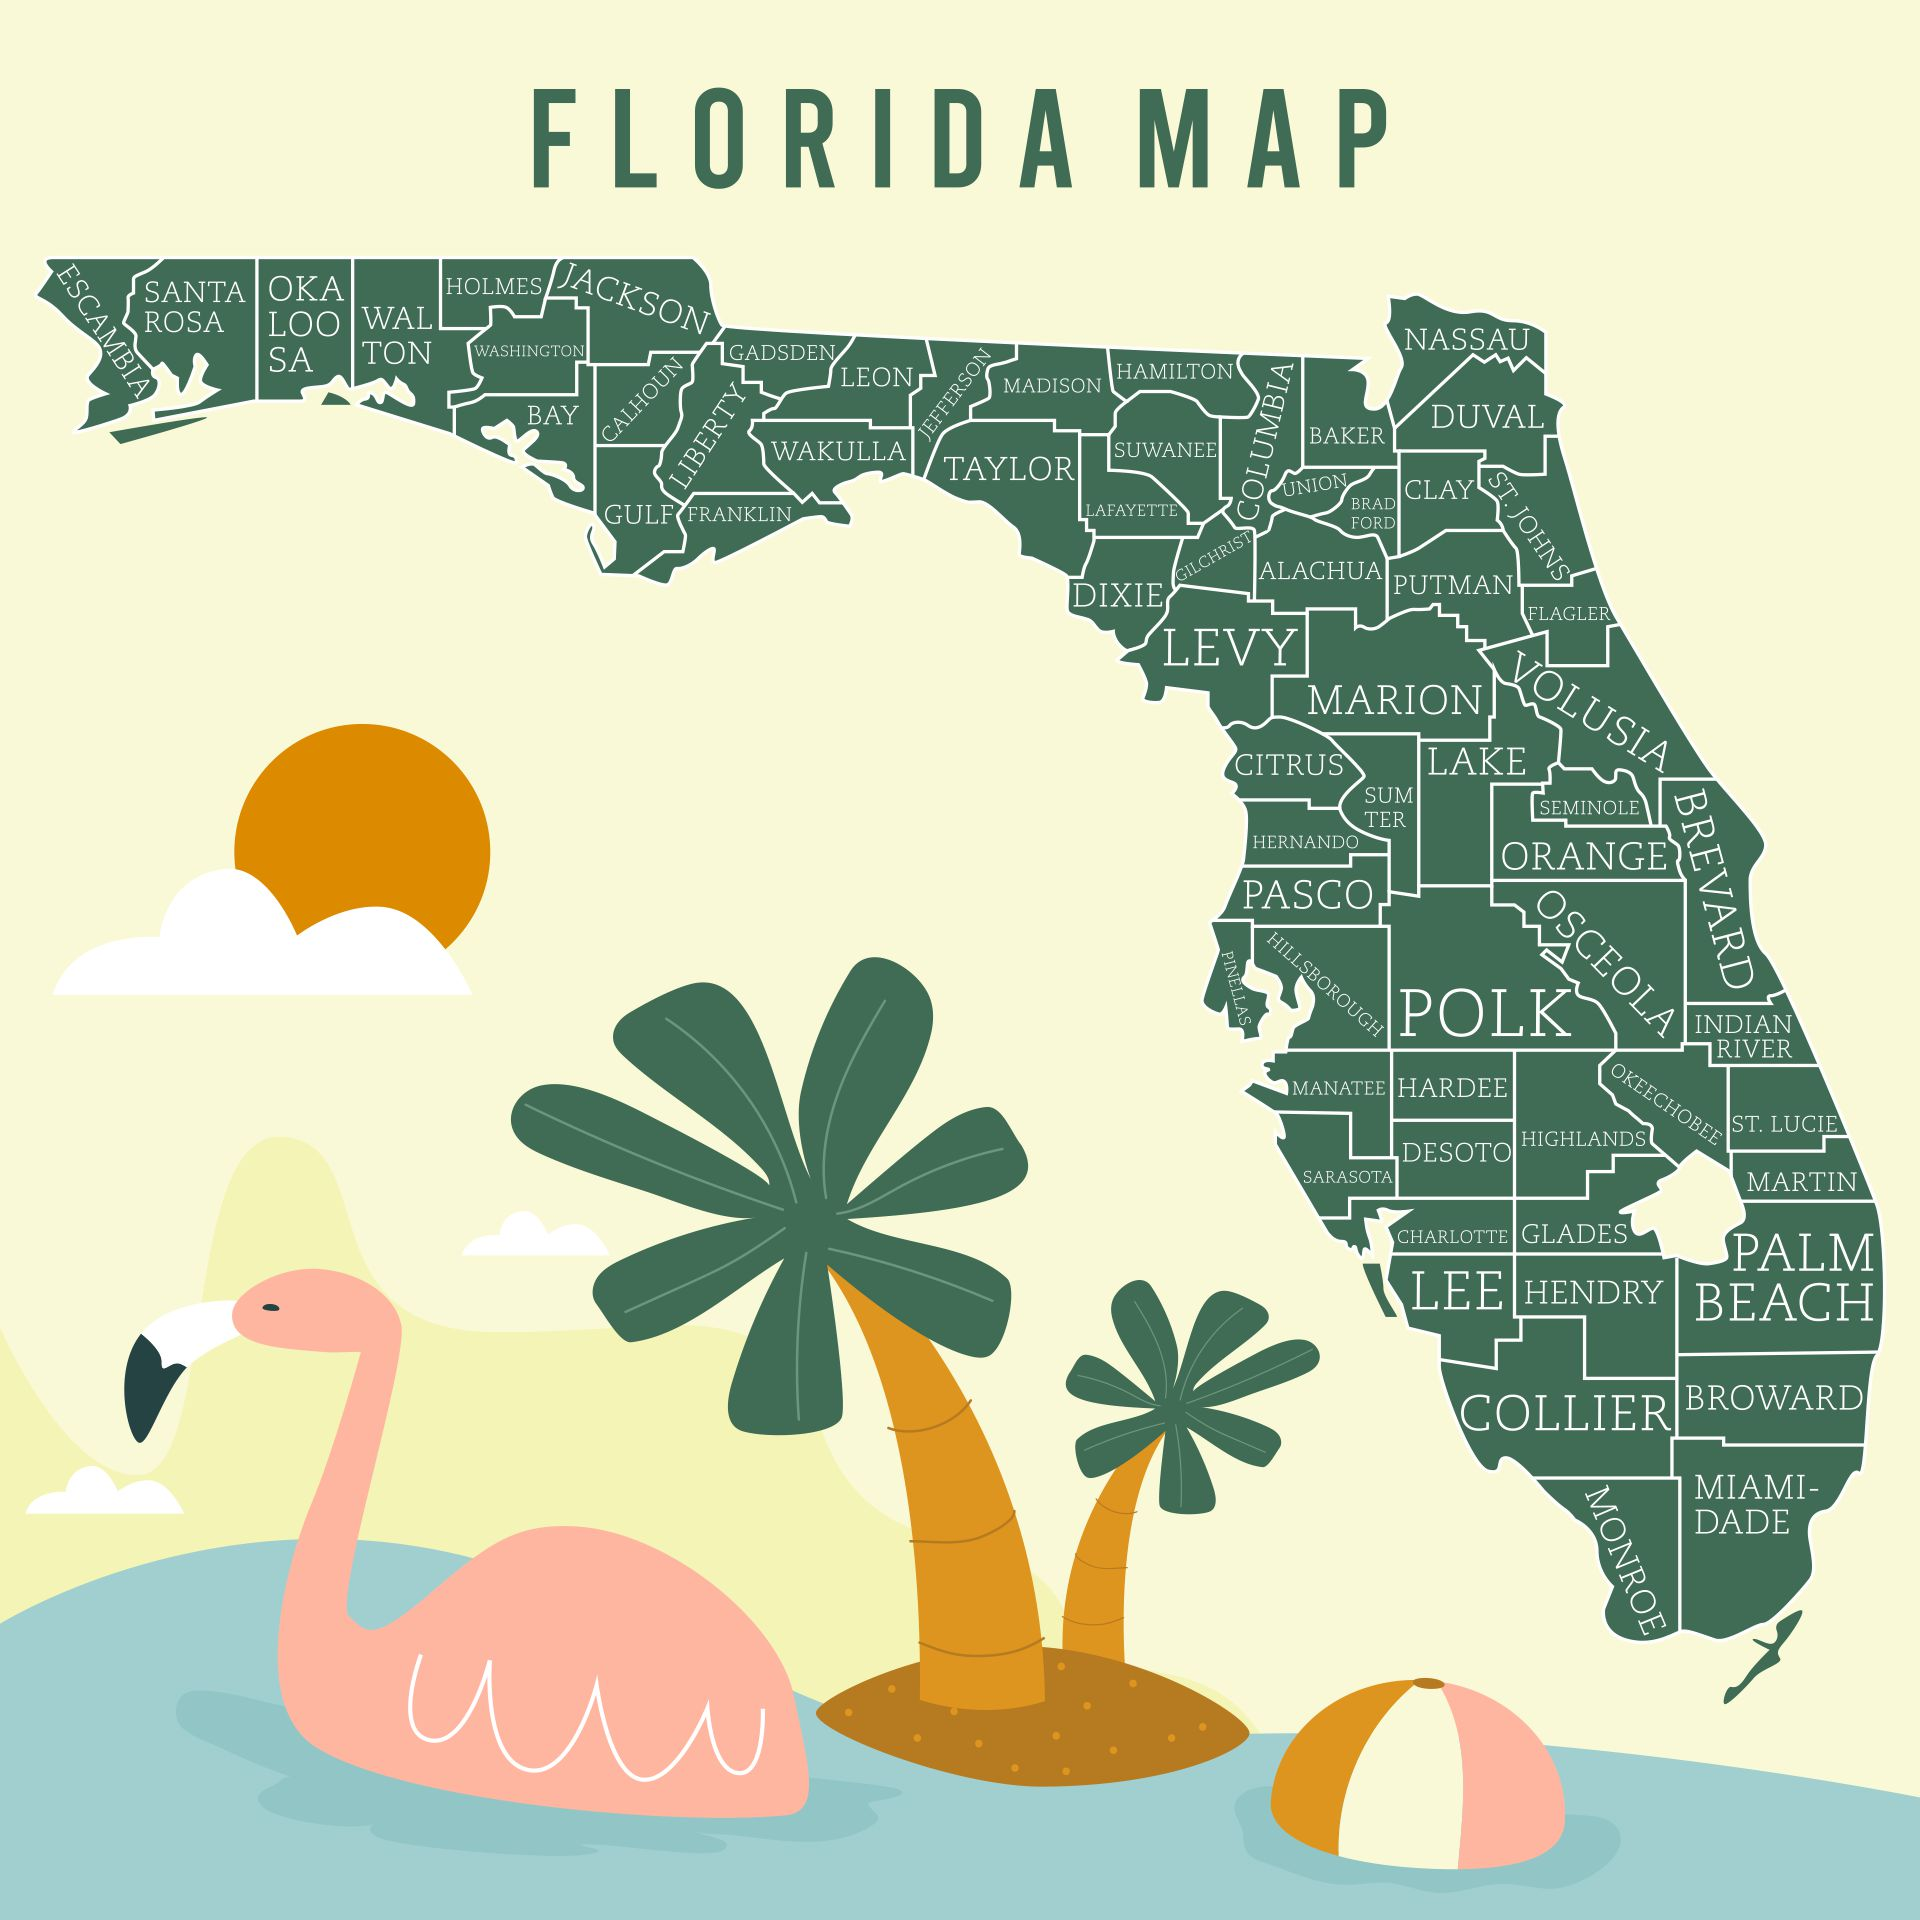 Printable Florida Map with Cities